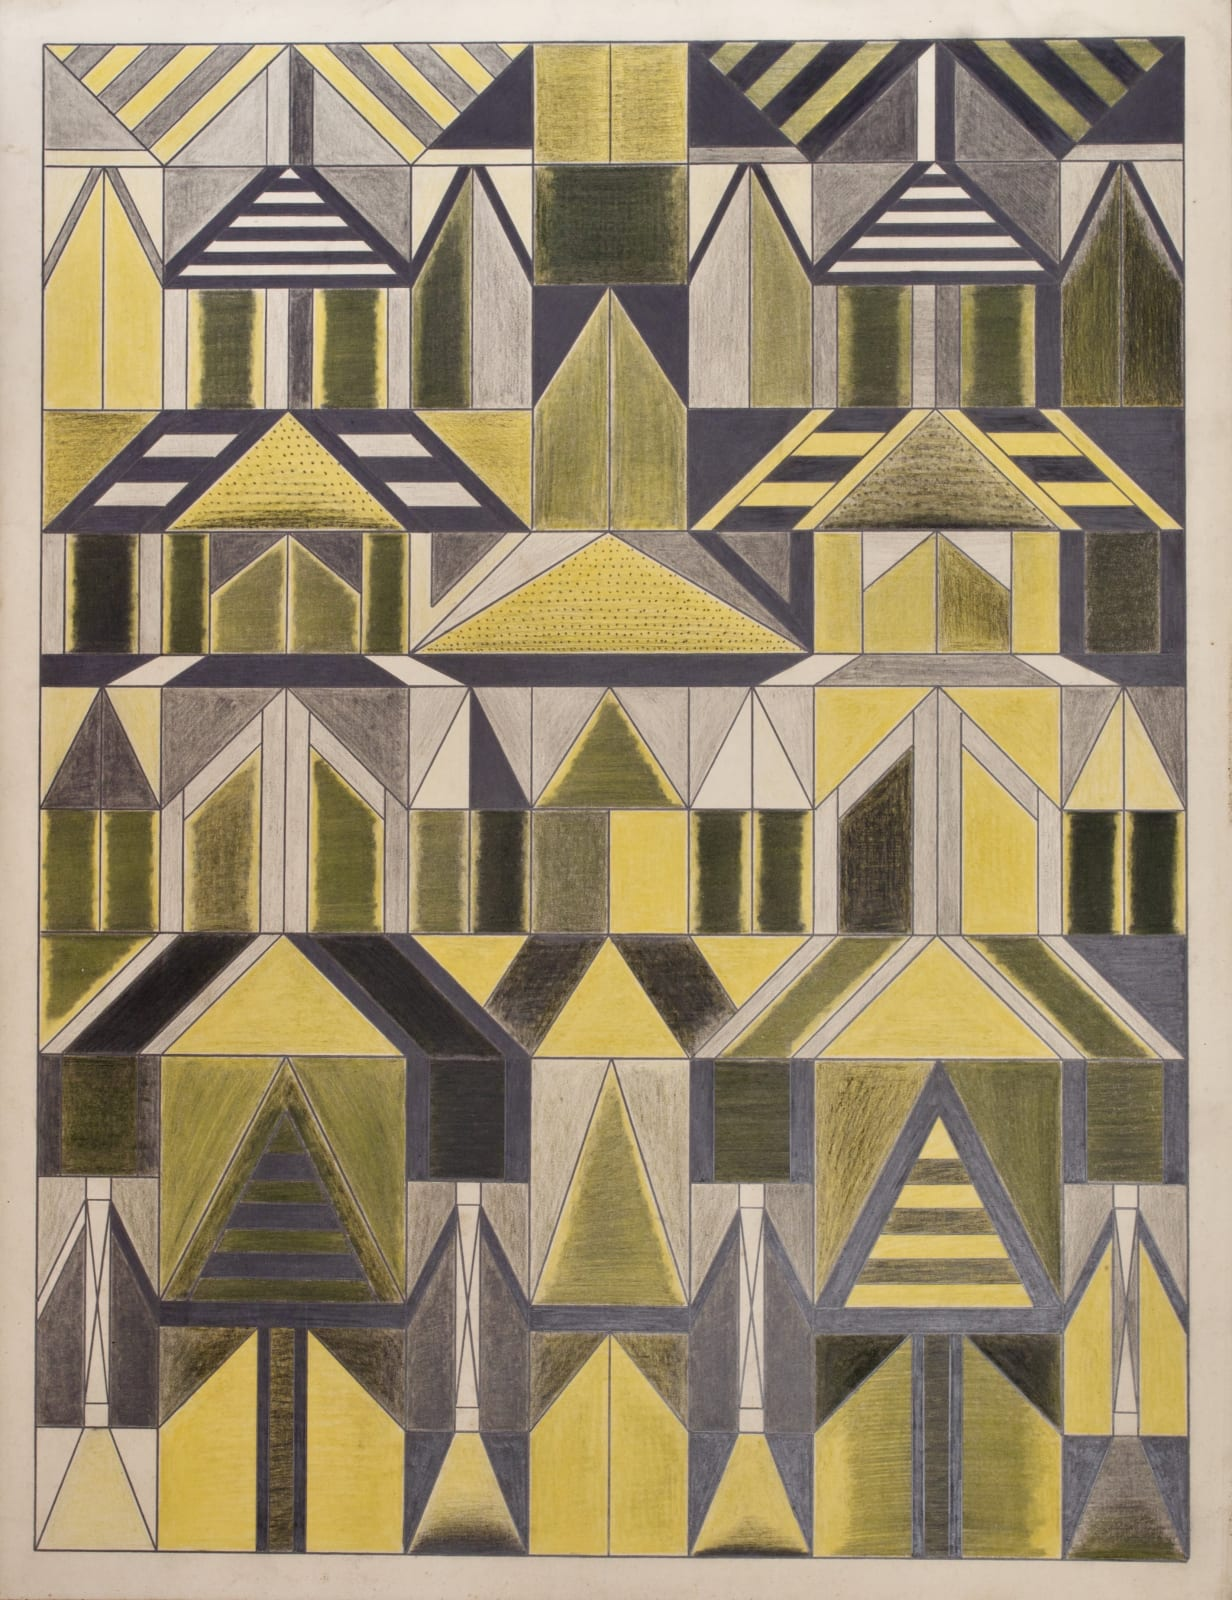 Untitled, ca. 1930 - 55 Colored pencil and graphite on paper 21 x 17 1/2 in. 53.3 x 44.5 cm. (DG 53)